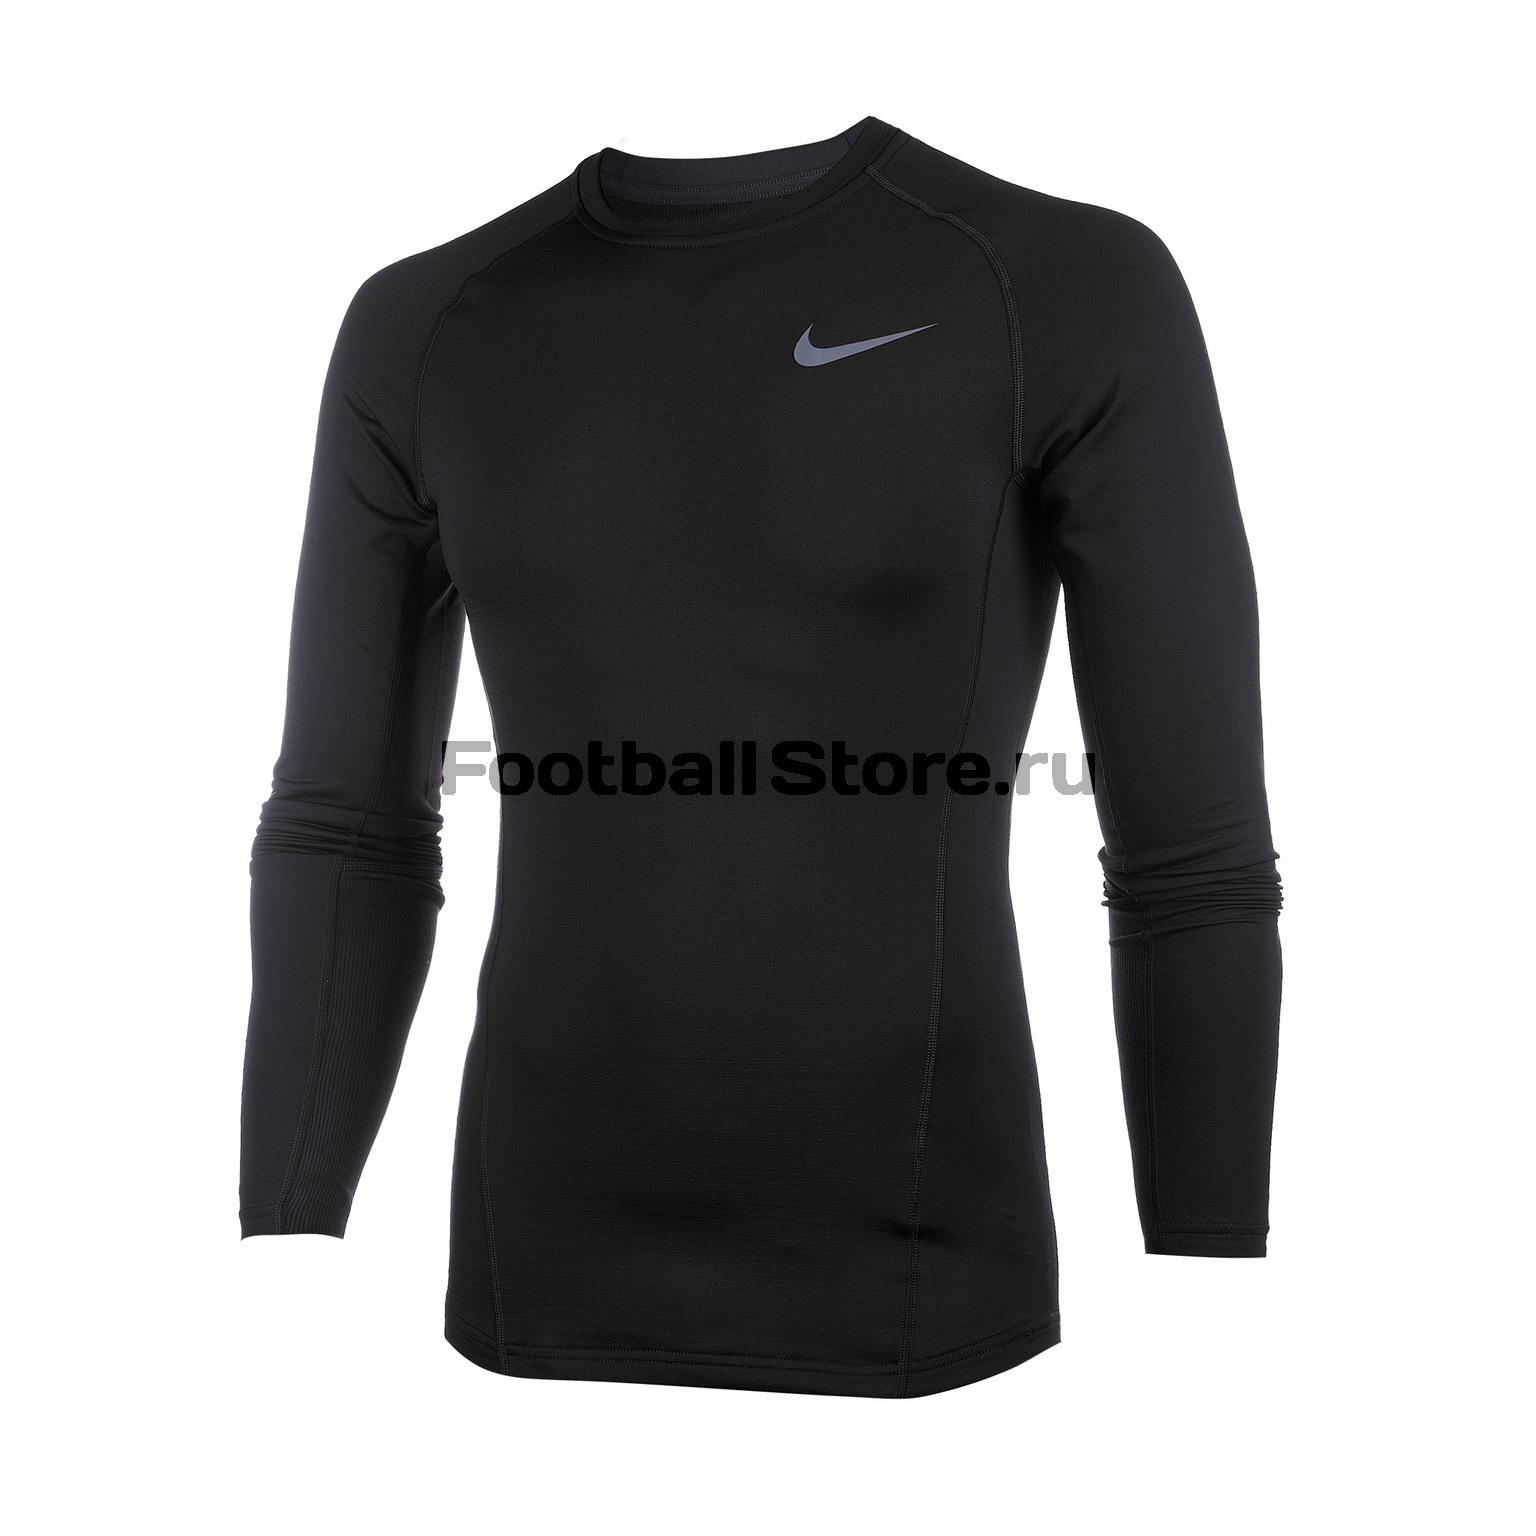 Белье футболка Nike Therma Top LS 929721-010 цена и фото